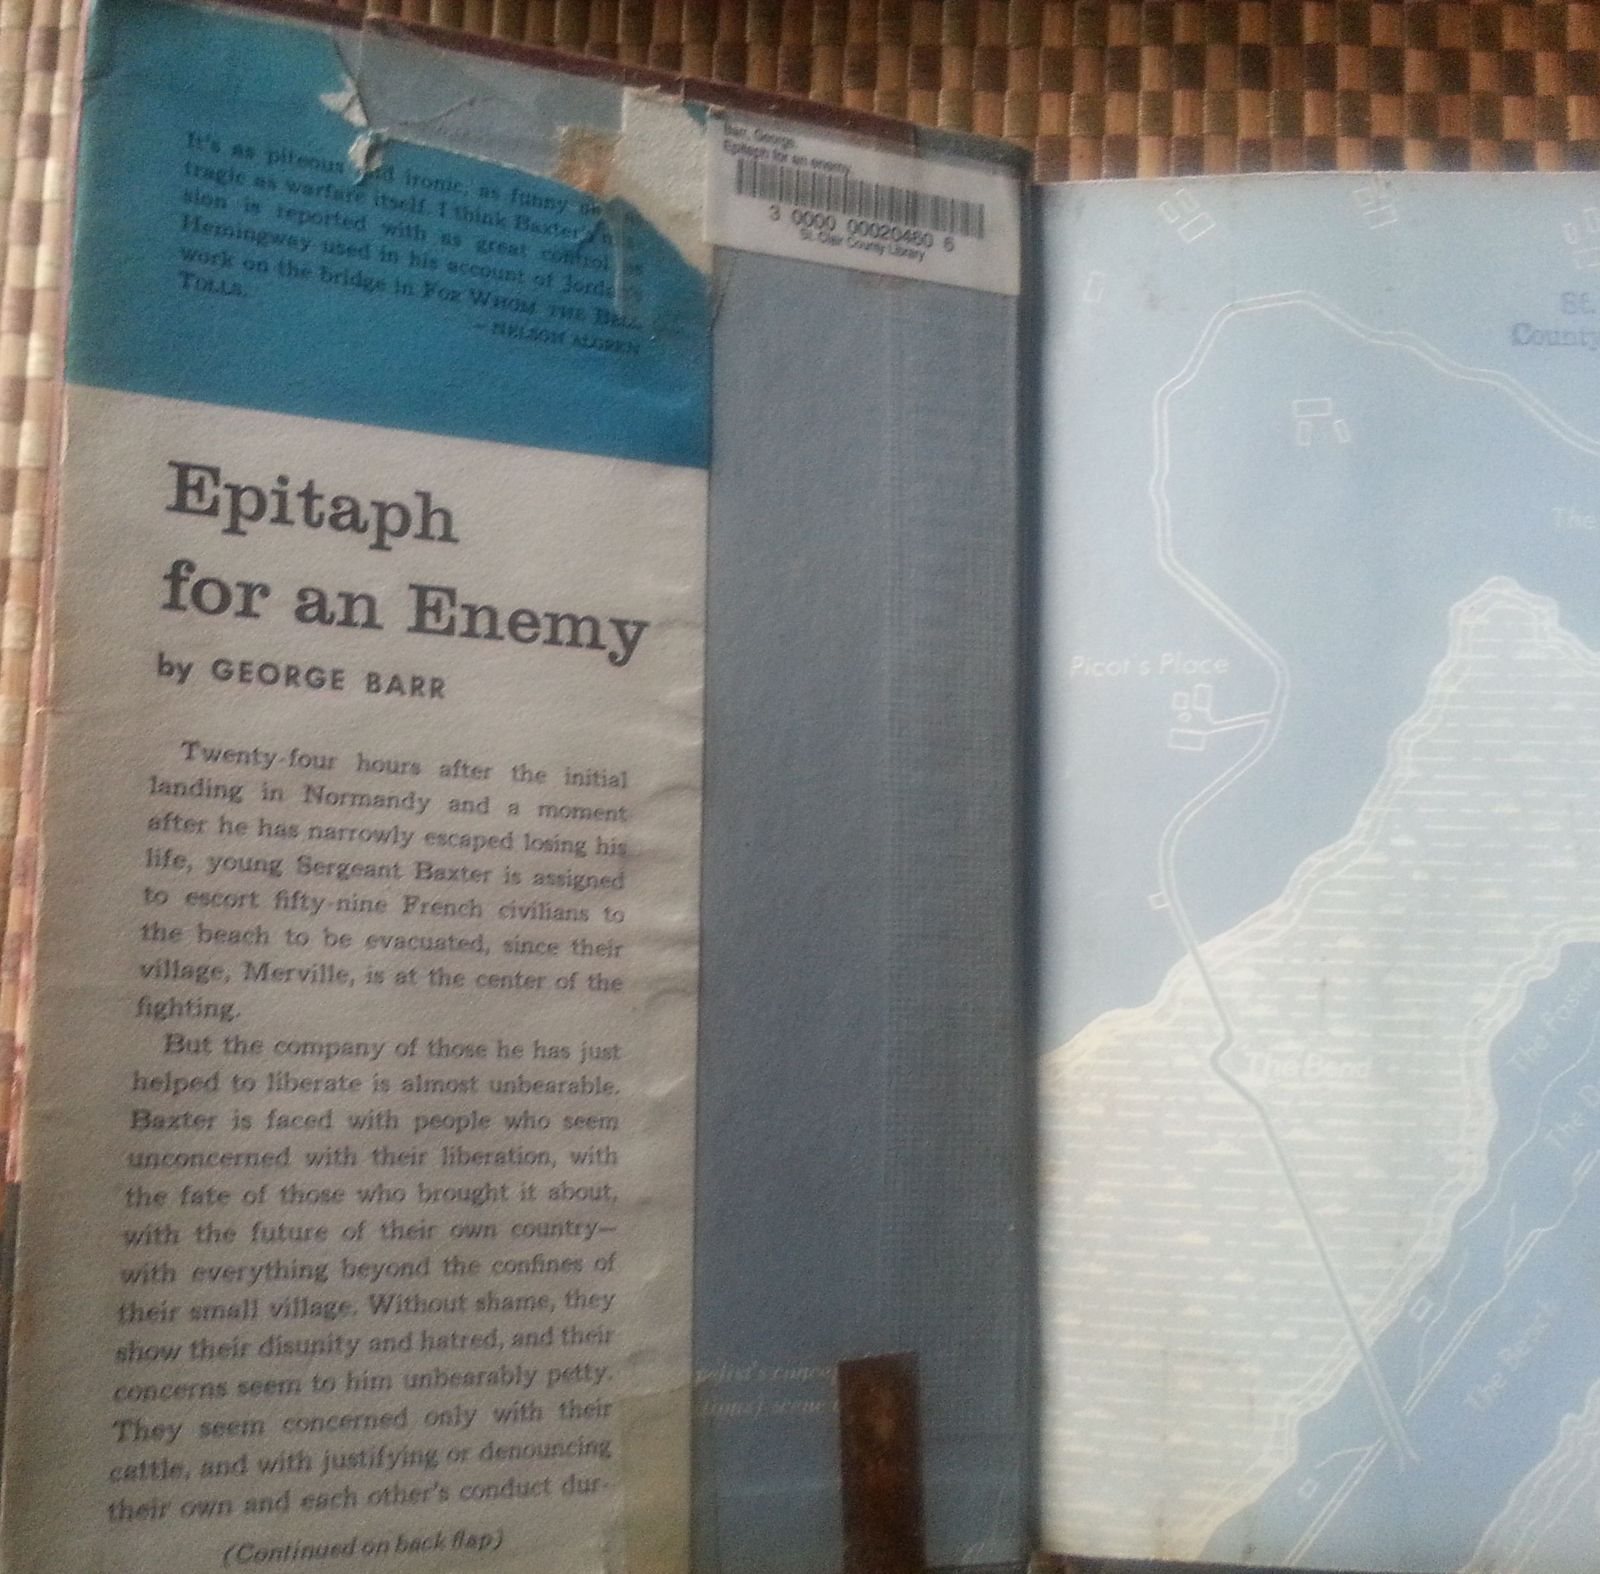 Epitaph for an Enemy by George Barr 1959 HBDJ Normandy